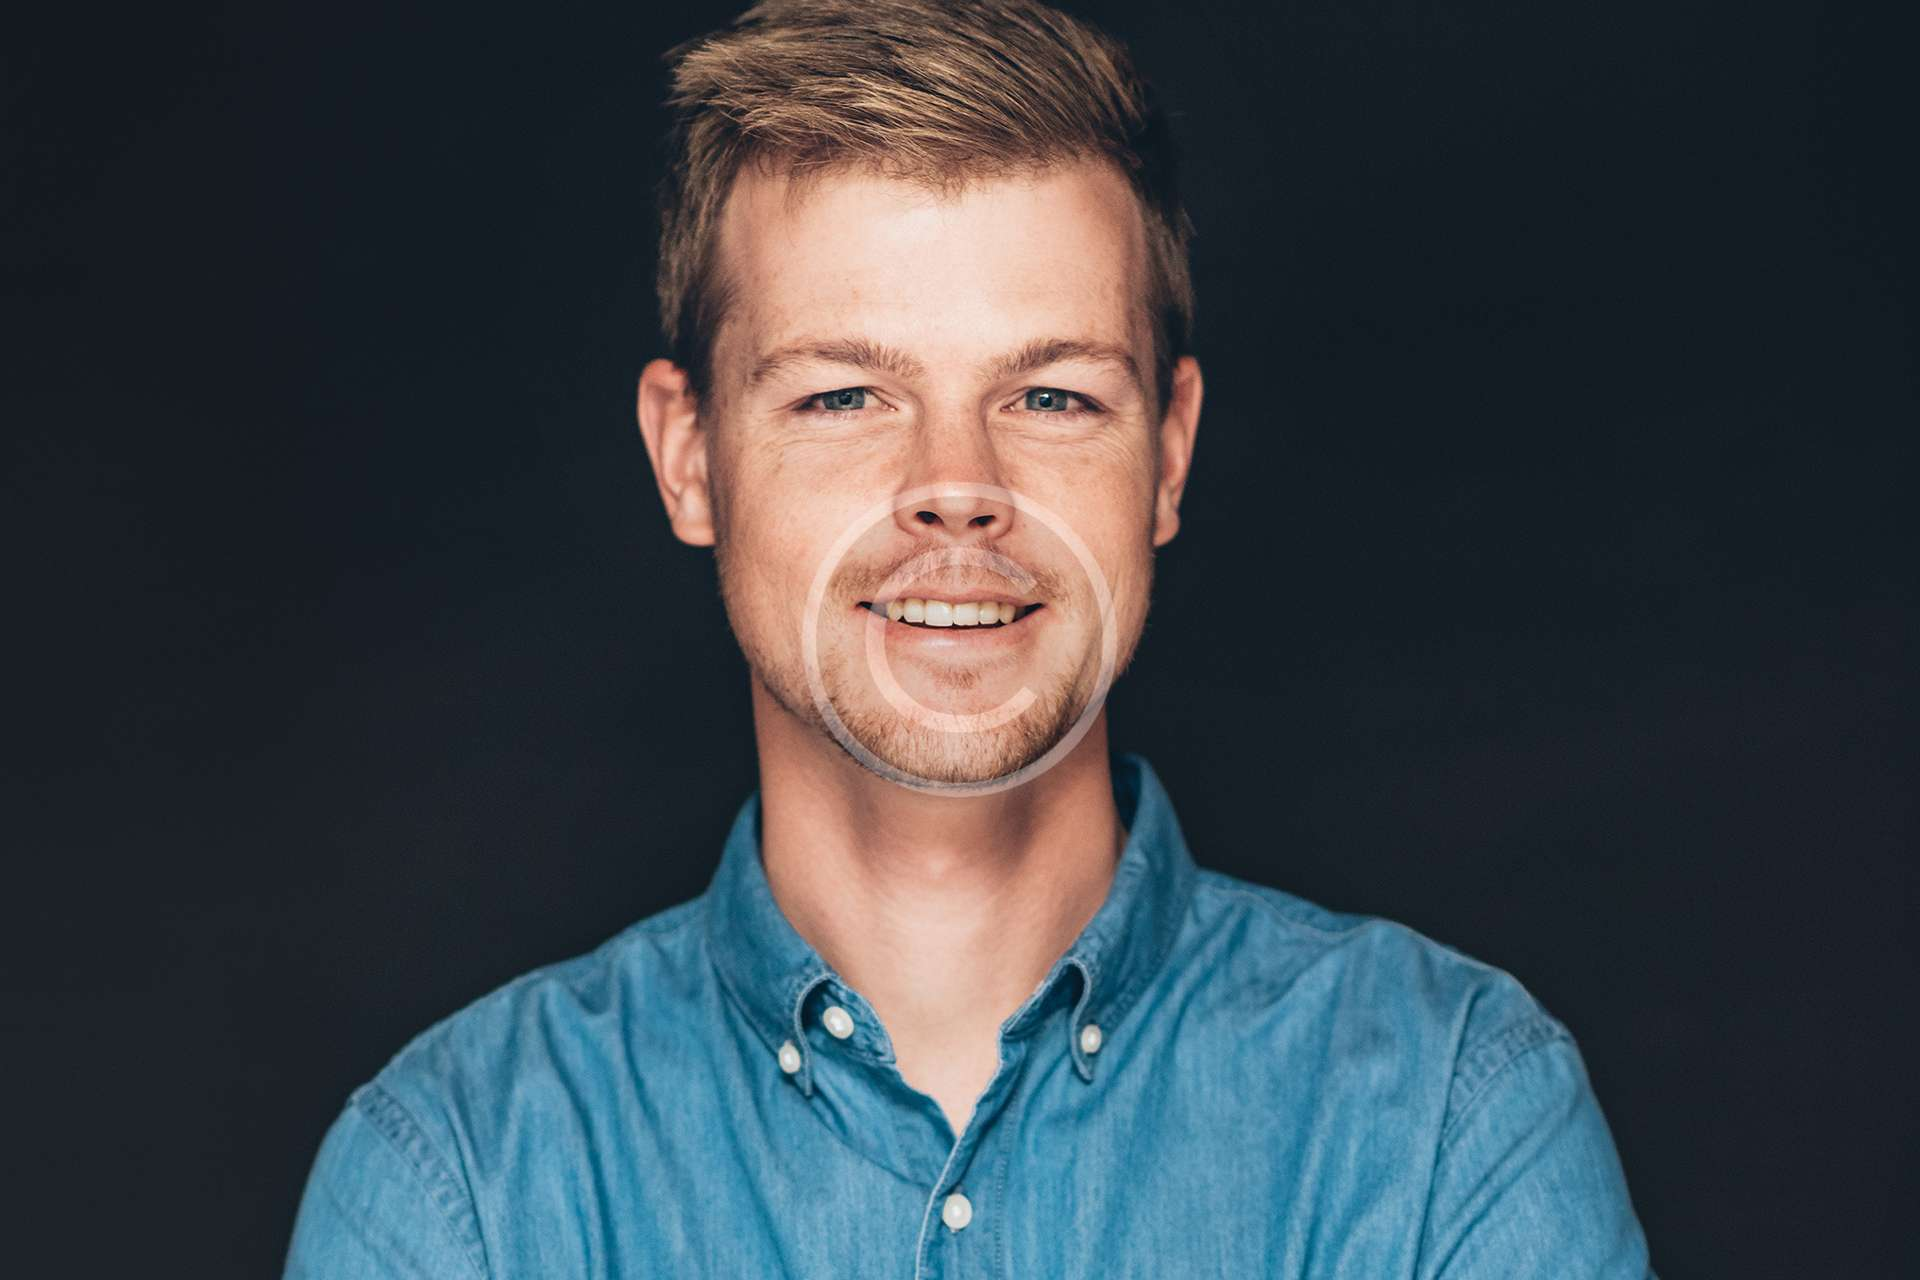 Meet the team: Richard Norman, our Community Manager